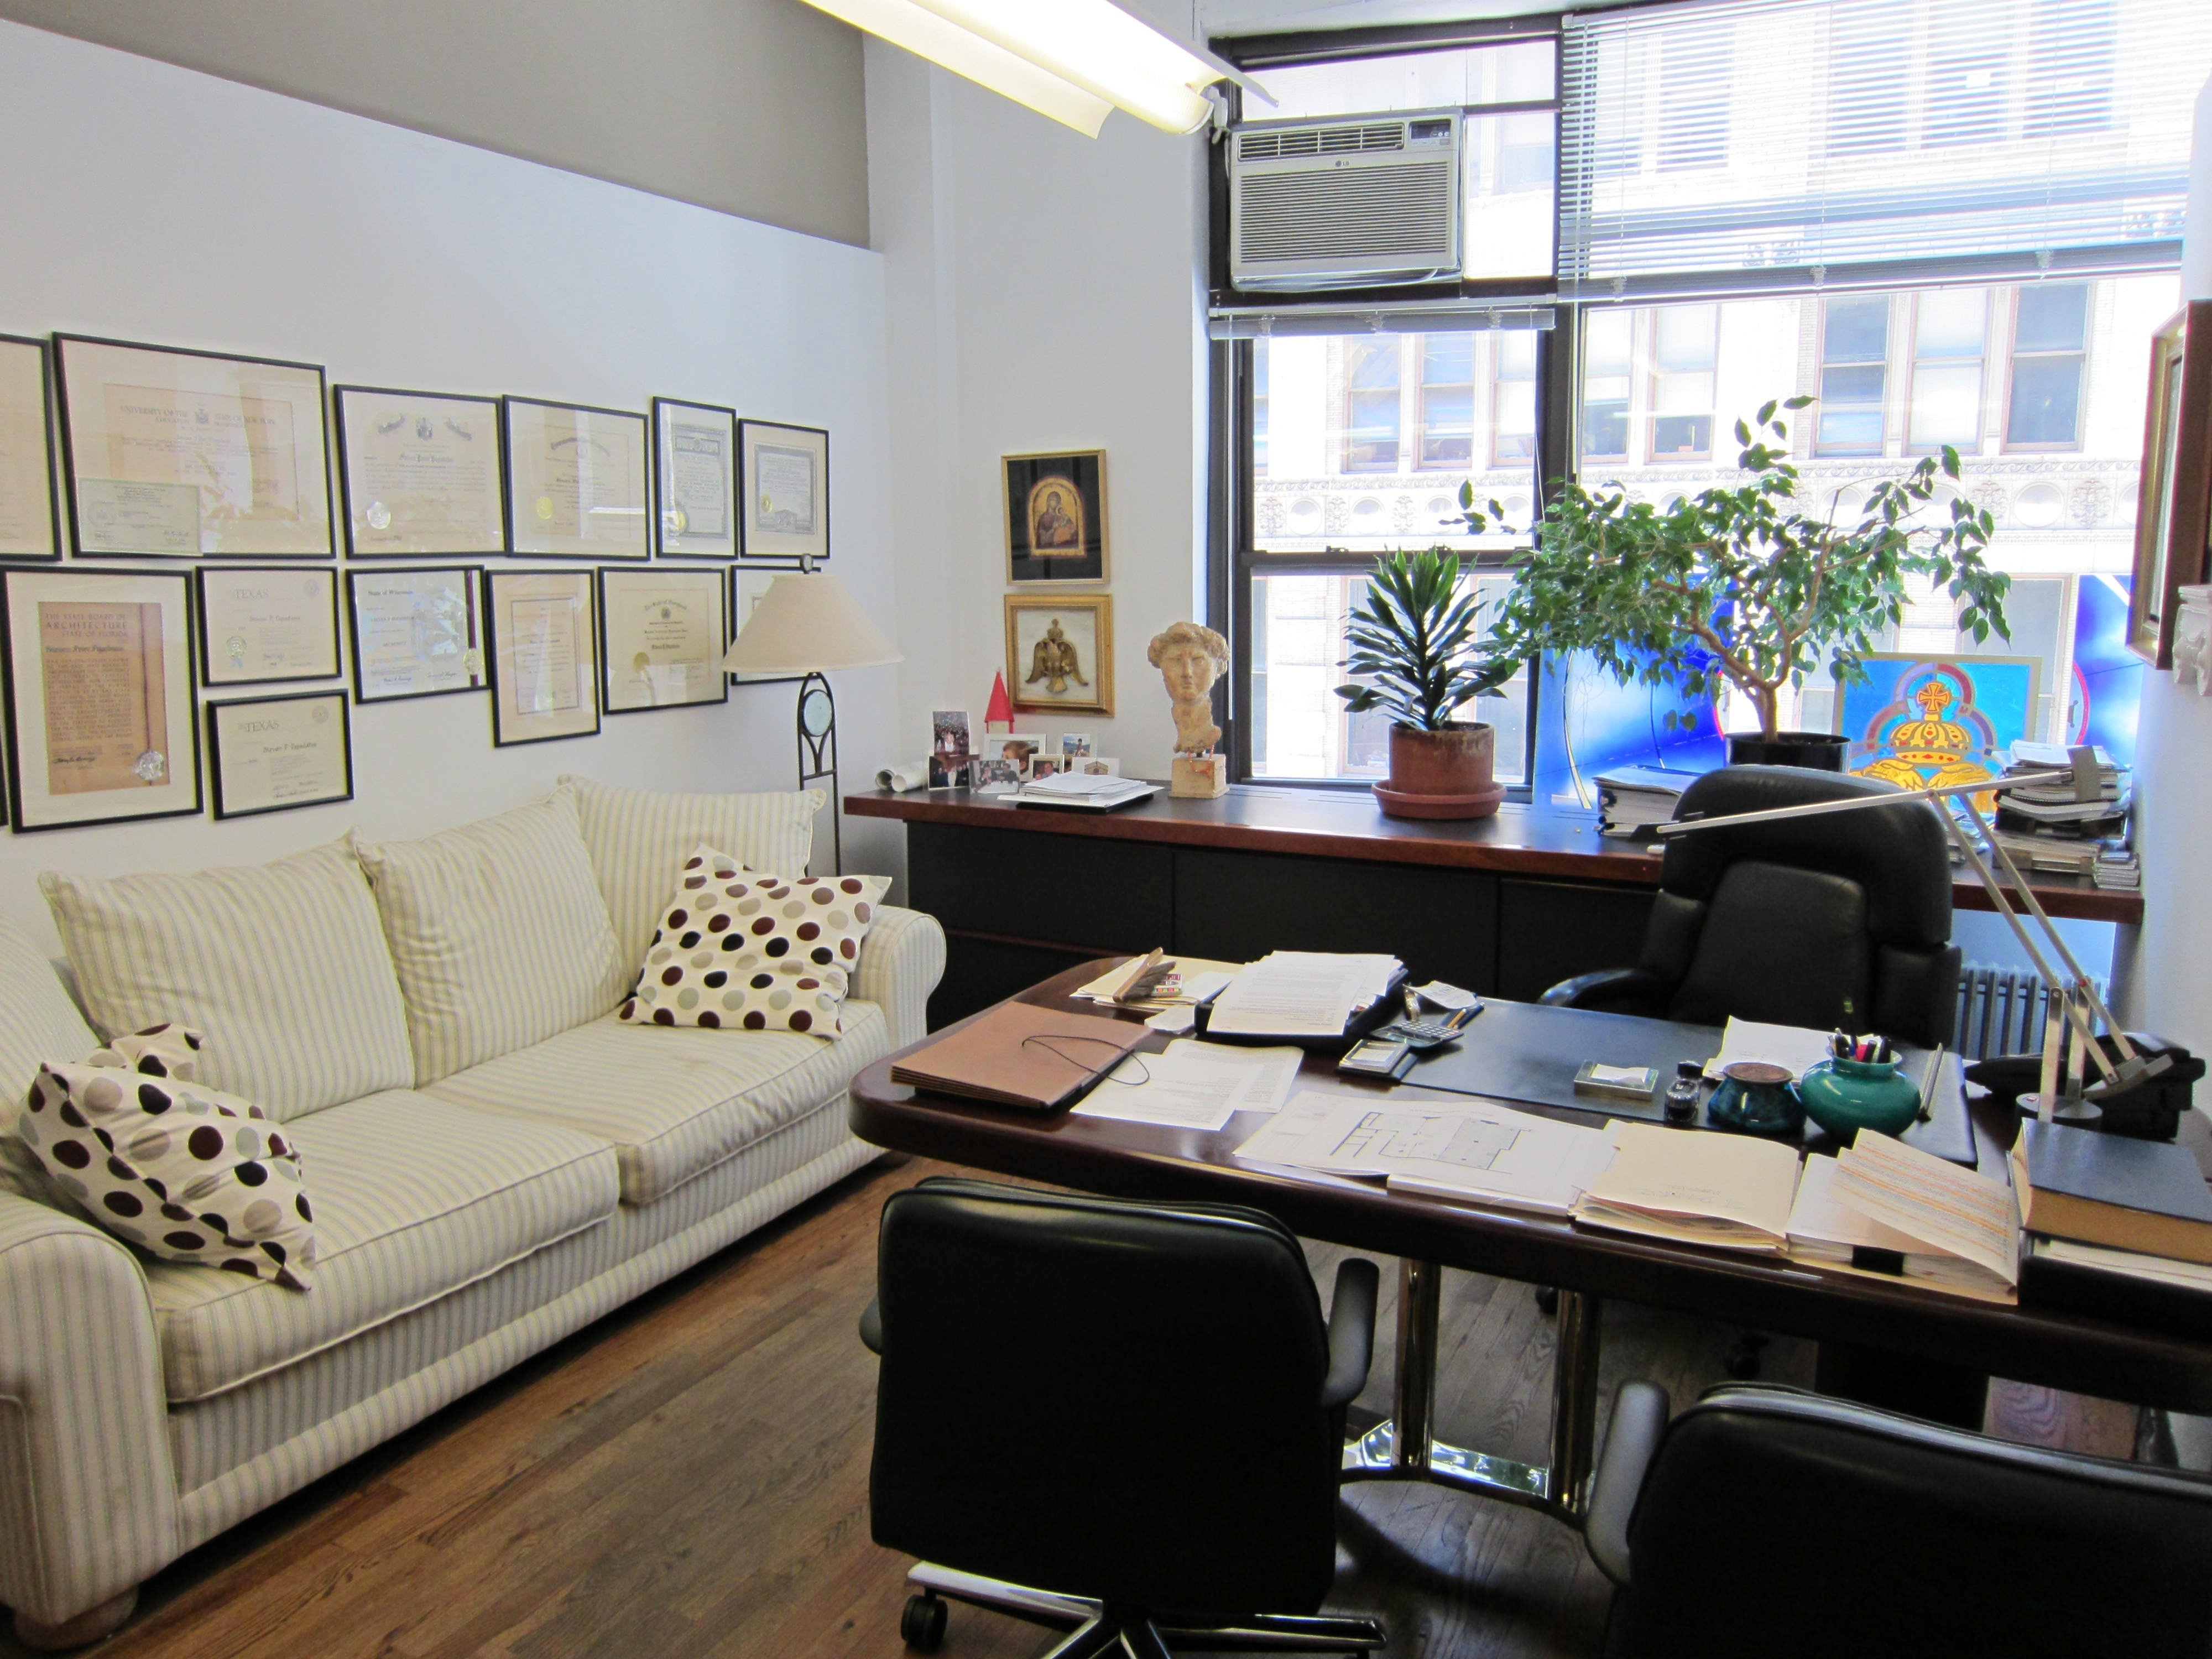 10 Best Ideas For Decorating Your Office At Work home office decorating your work desk for christmas trend decoration